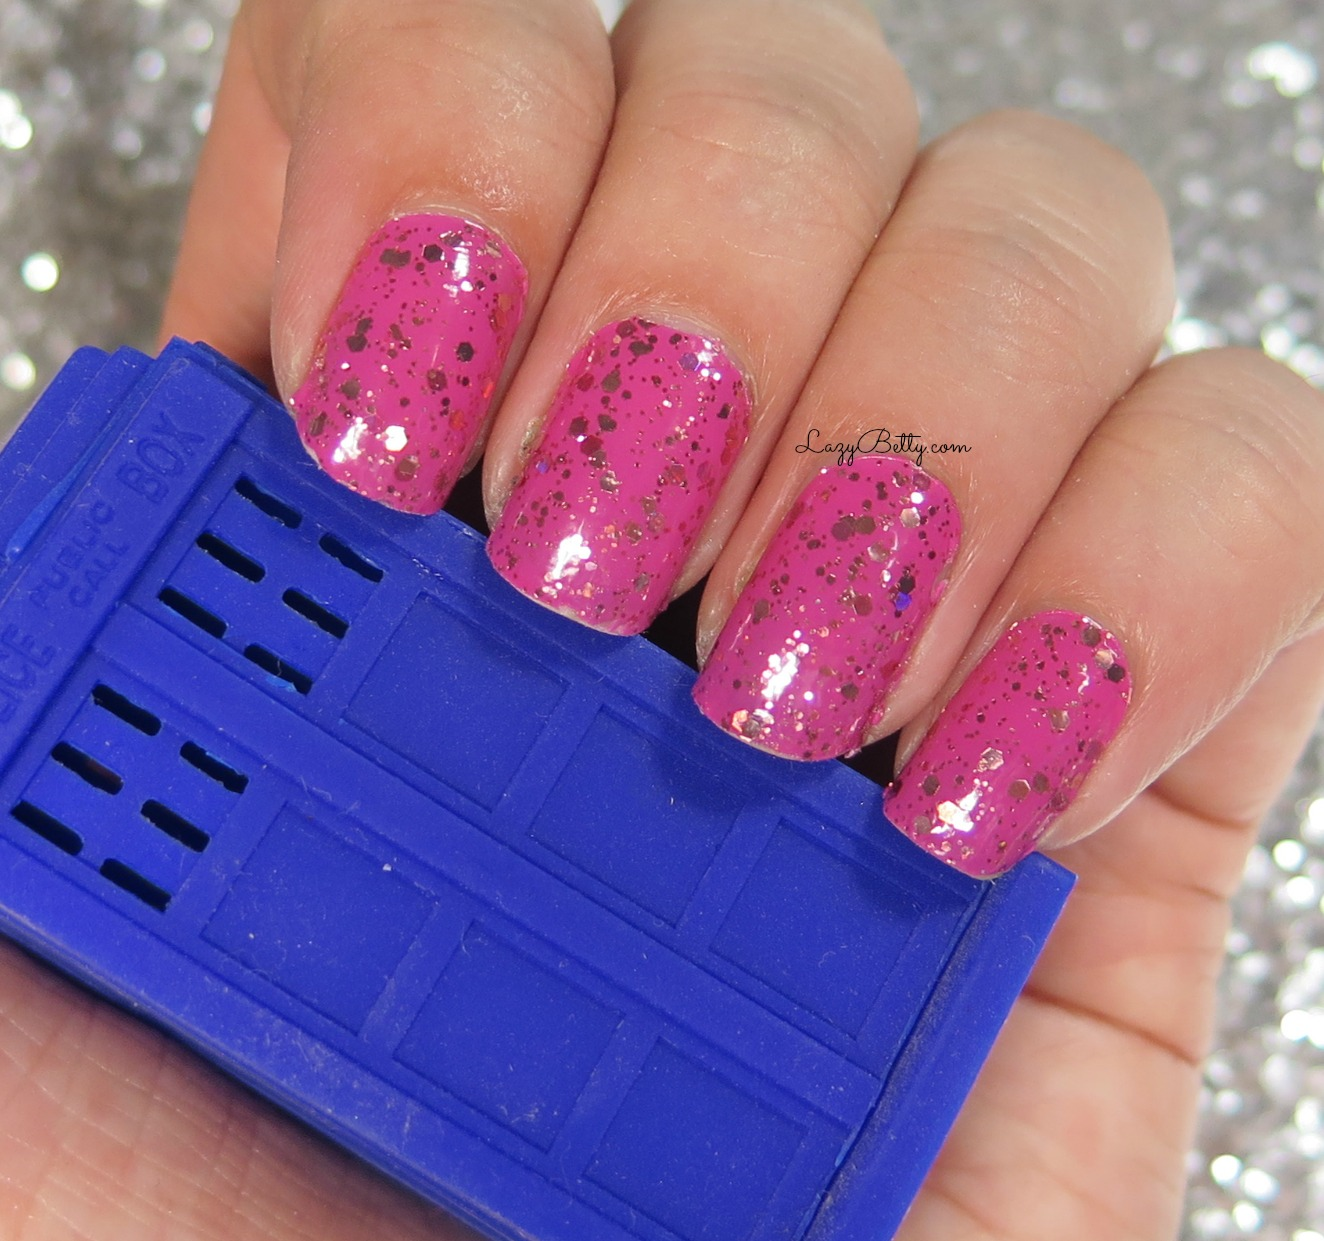 Color Street Nail Wraps Review + Free sample for YOU! - Lazy Betty